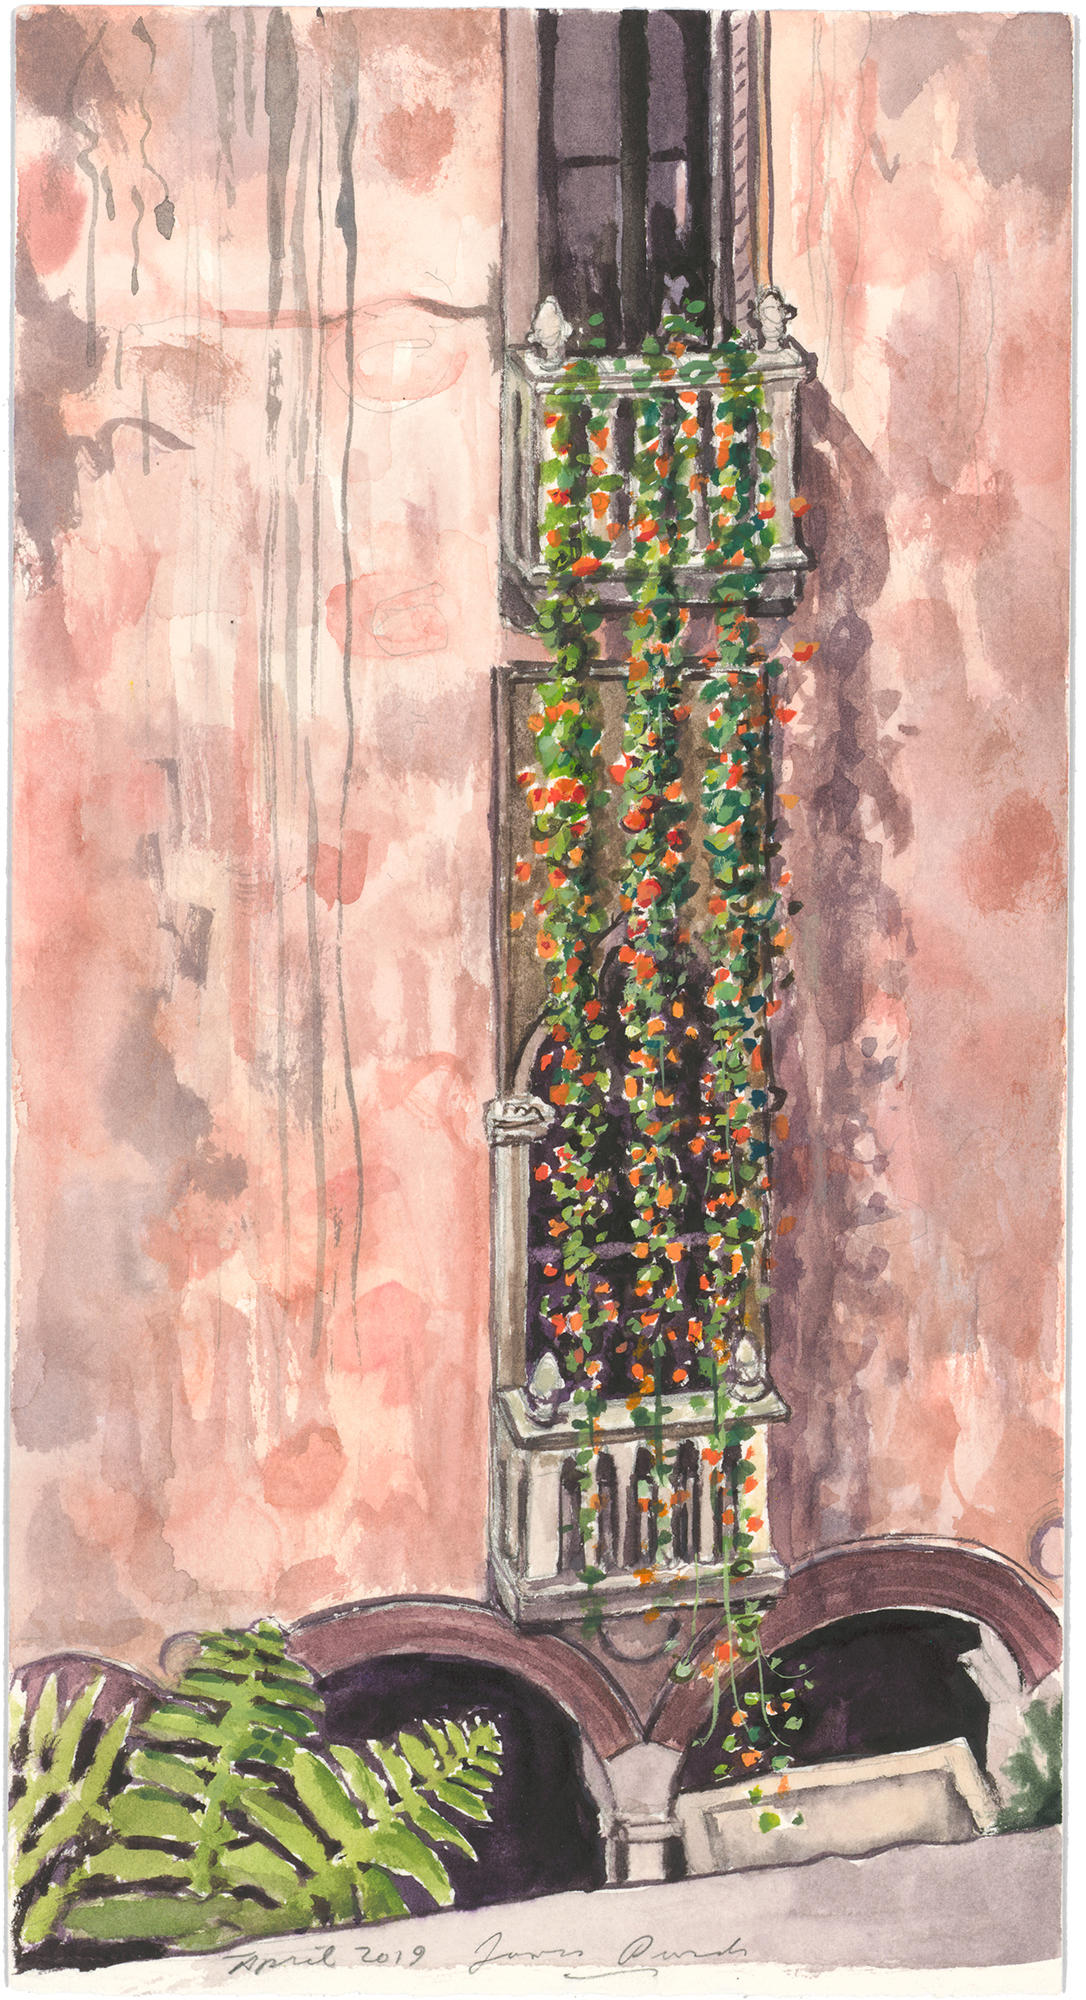 A closer view of a watercolor painting of nasturtiums at the Isabella Stewart Gardner Museum